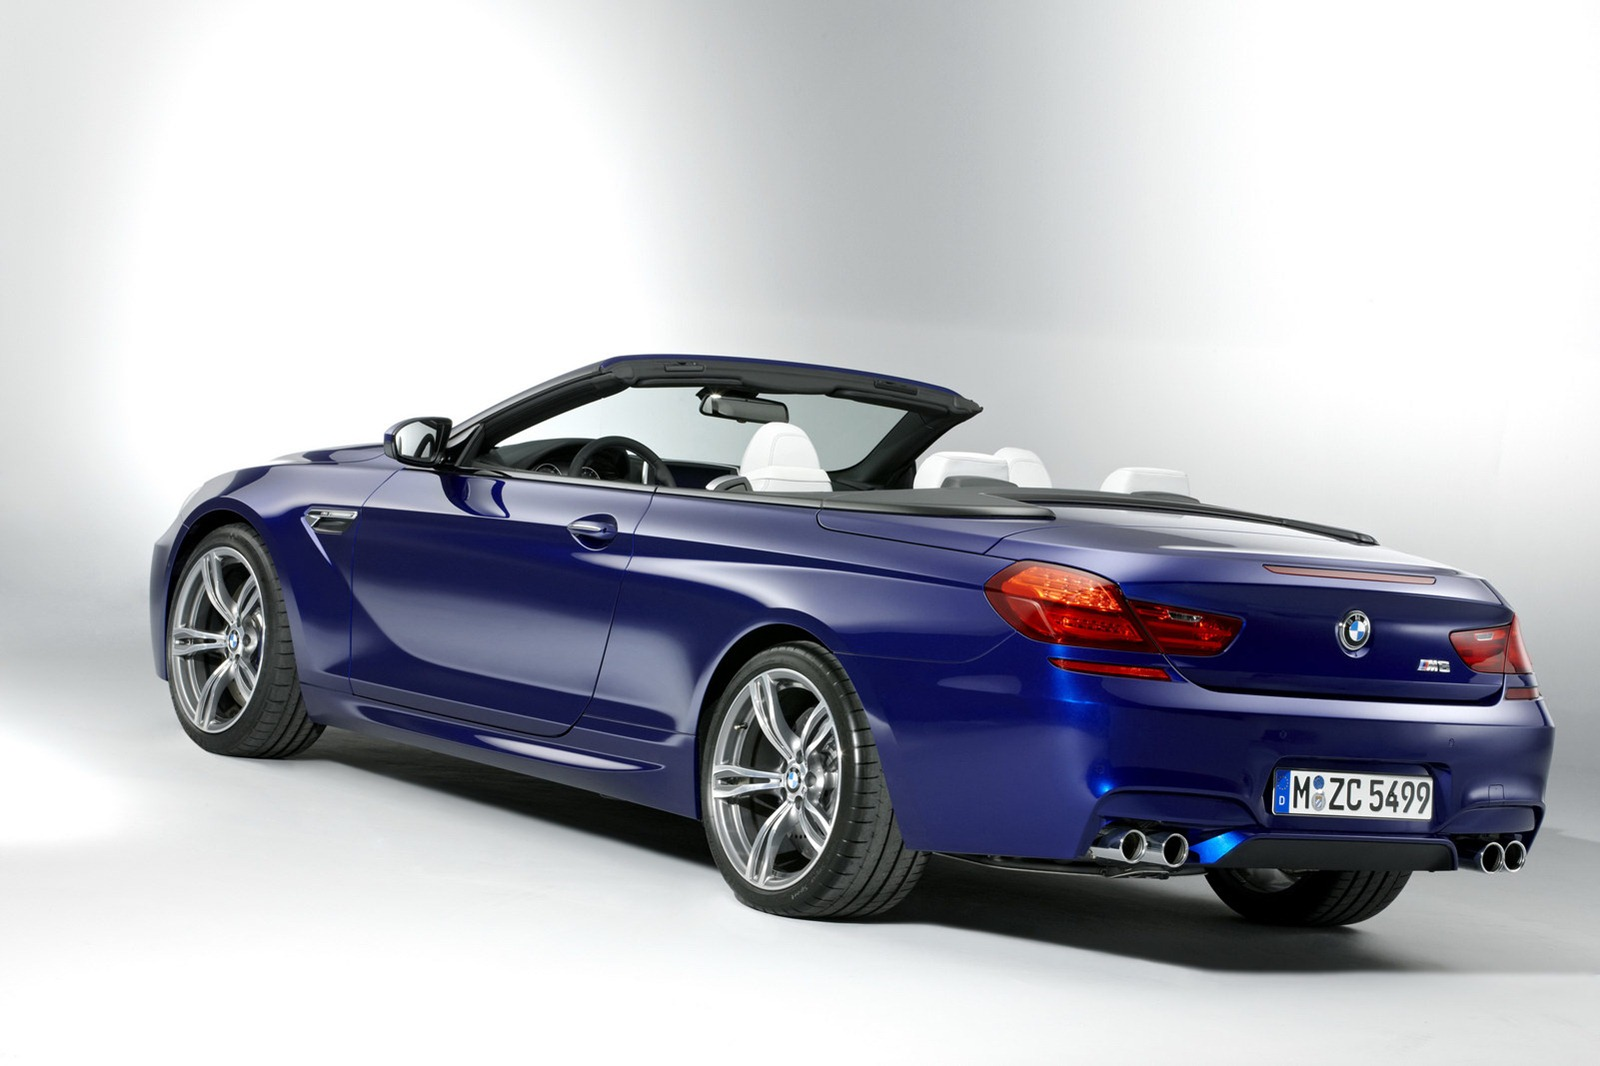 BMW M6 F12 Convertible 2012 rear angle quad exhausts